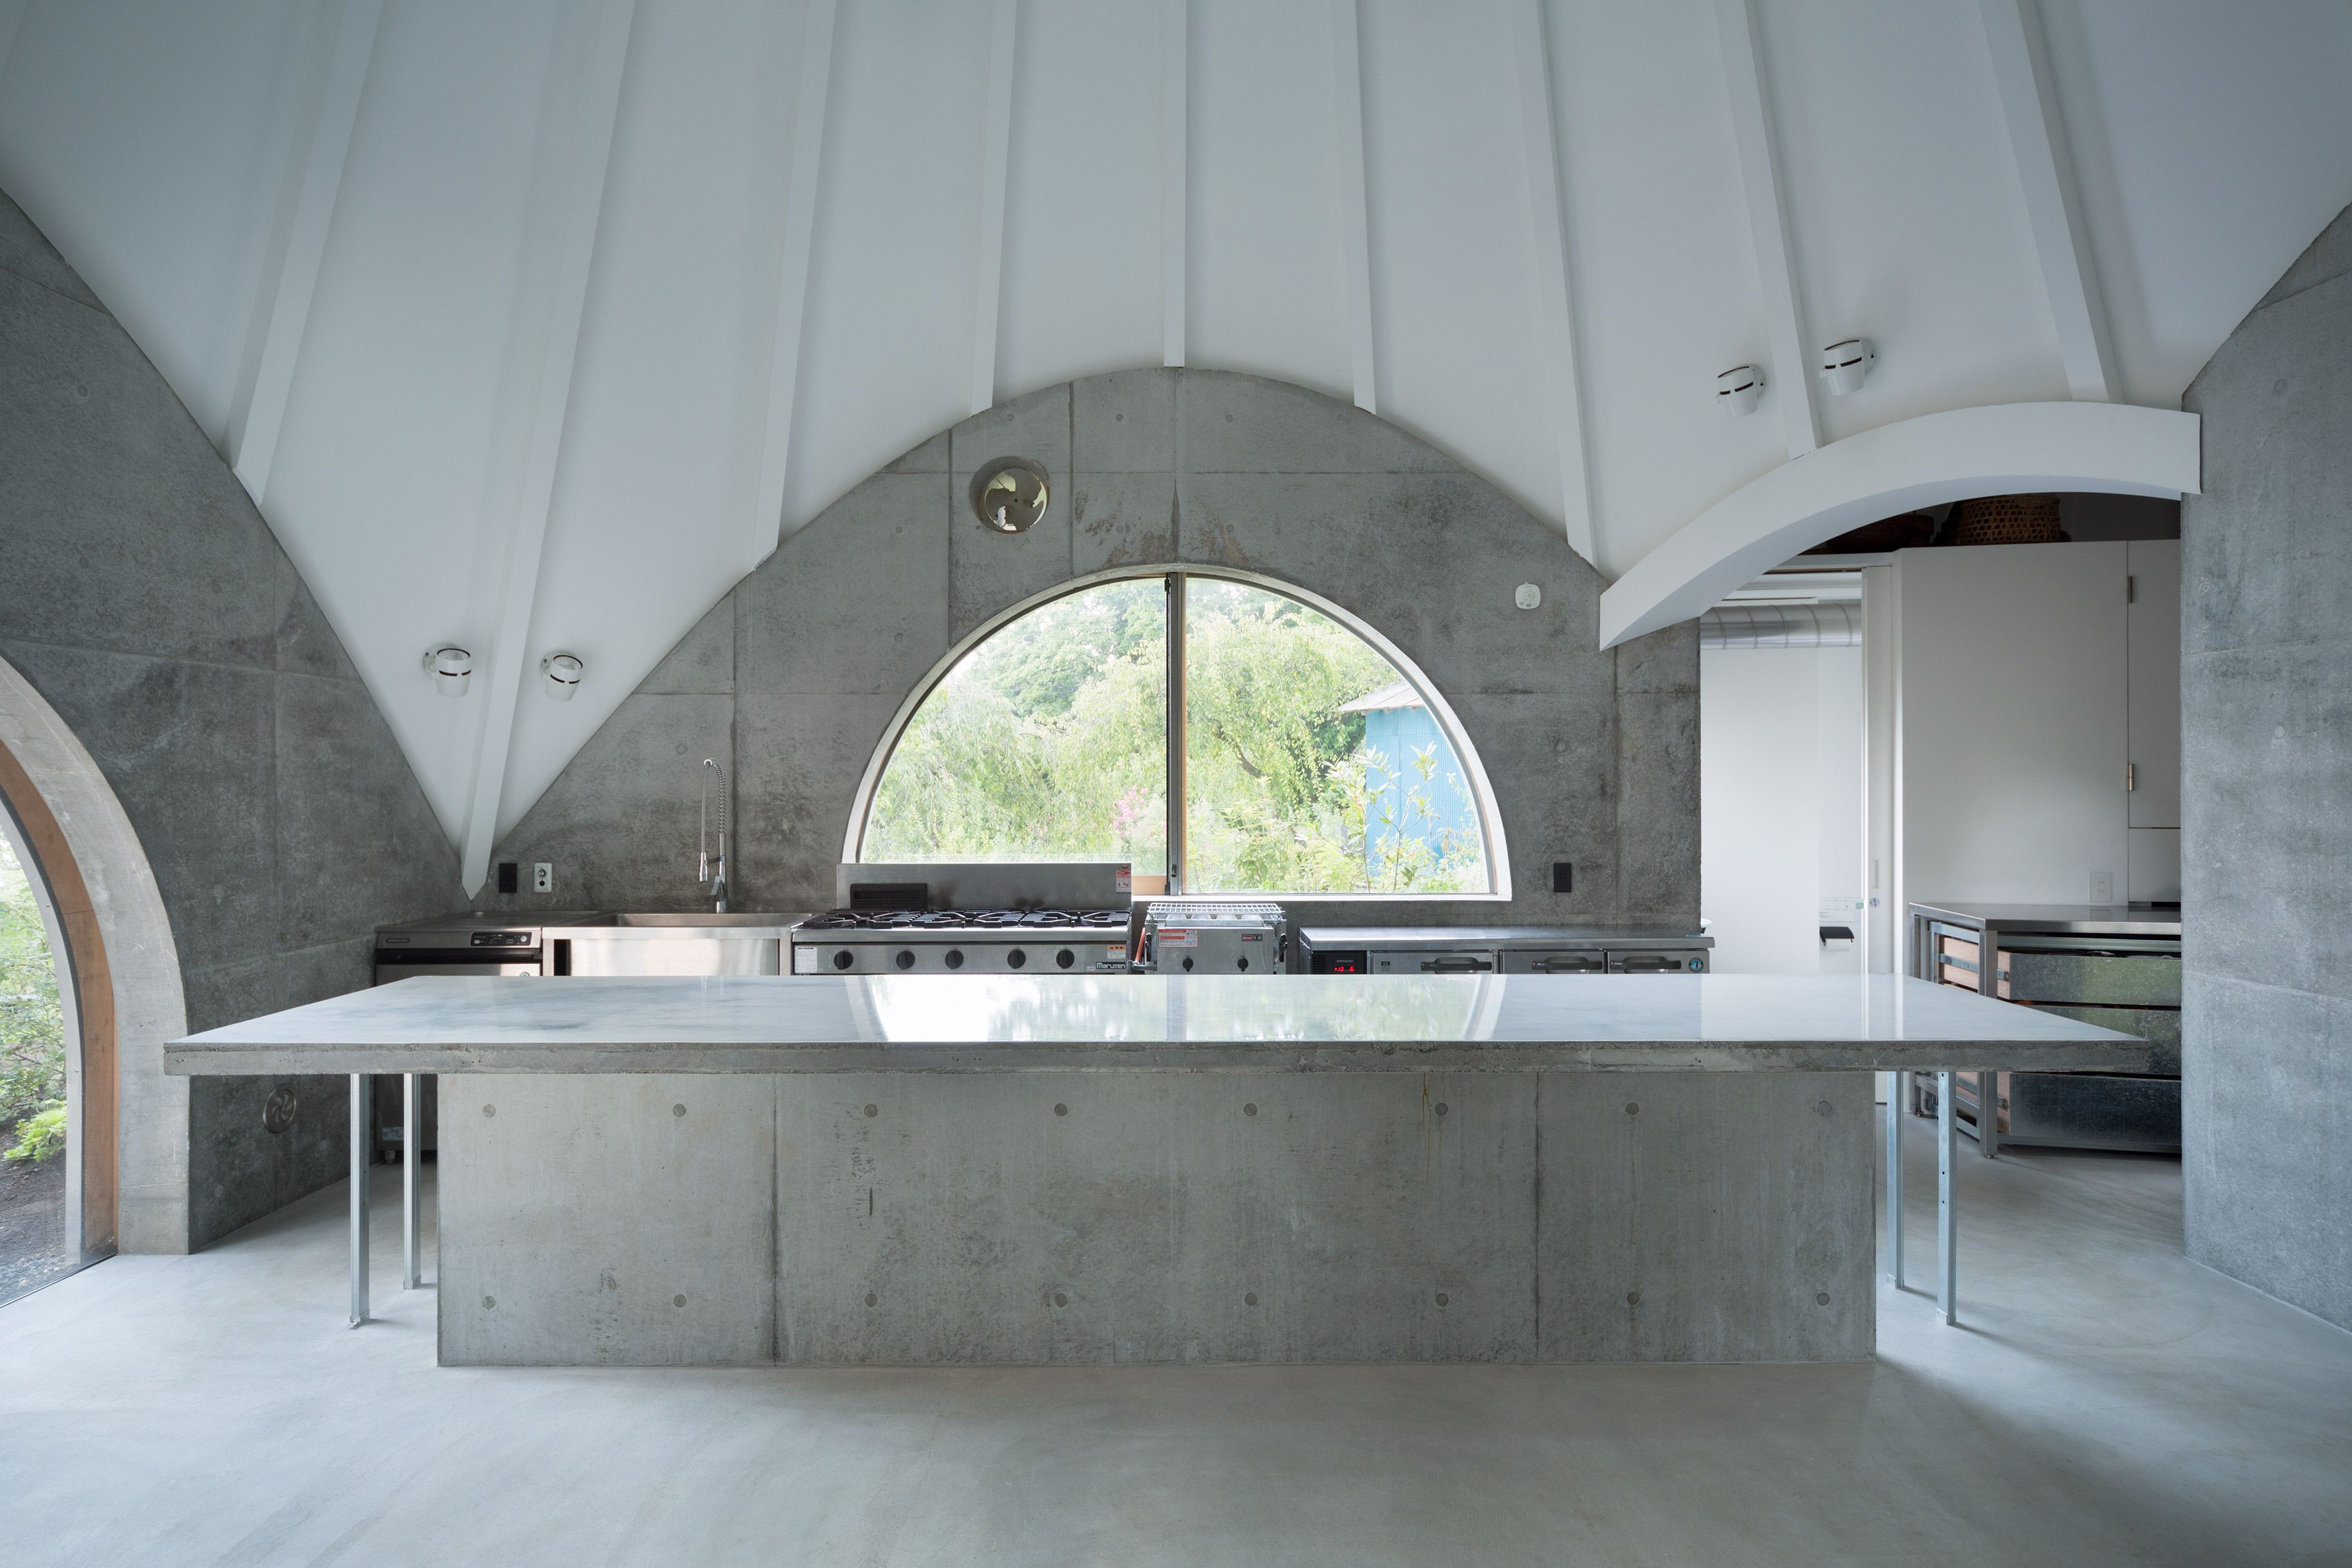 Teepee-shaped Jikka complex by Issei Suma features community kitchen and…